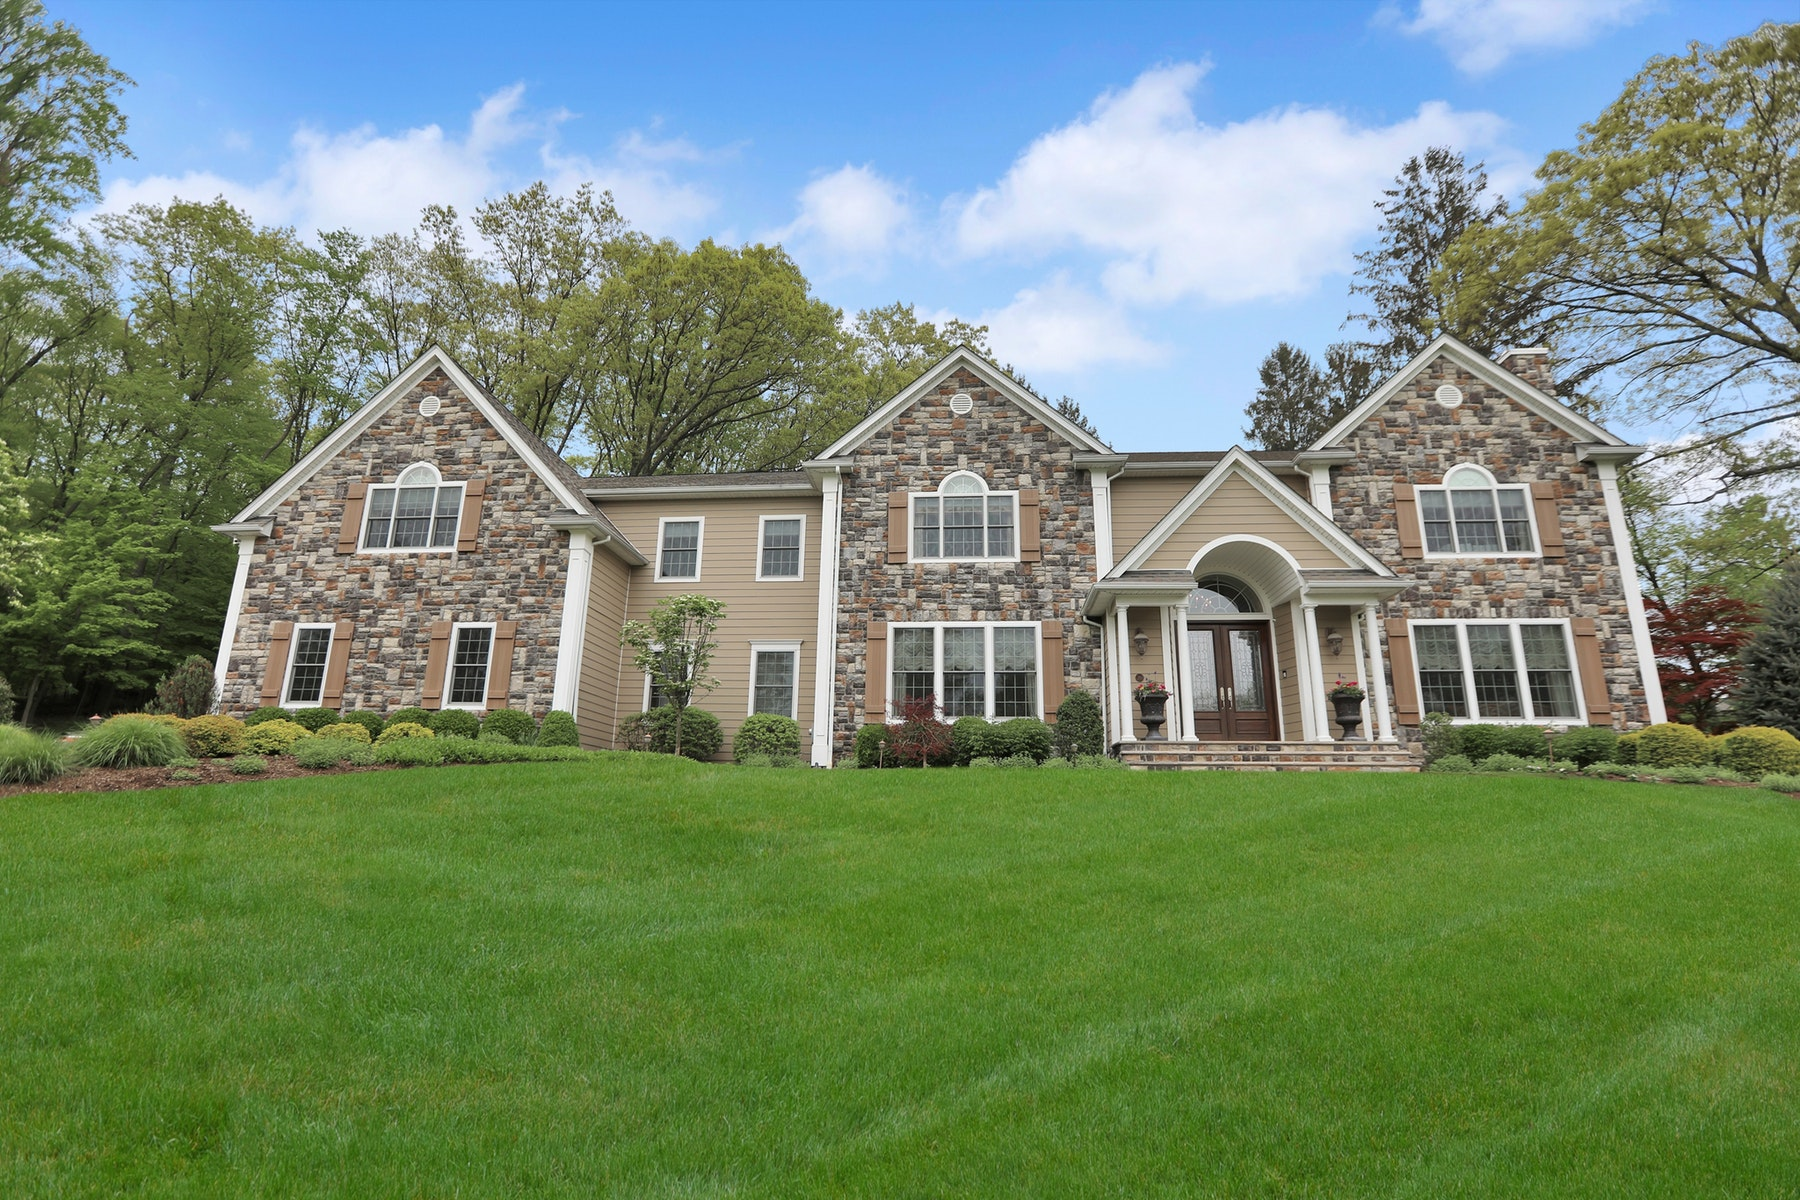 Single Family Homes for Sale at Custom Built Luxury Home 20 Lilline Lane Upper Saddle River, New Jersey 07458 United States